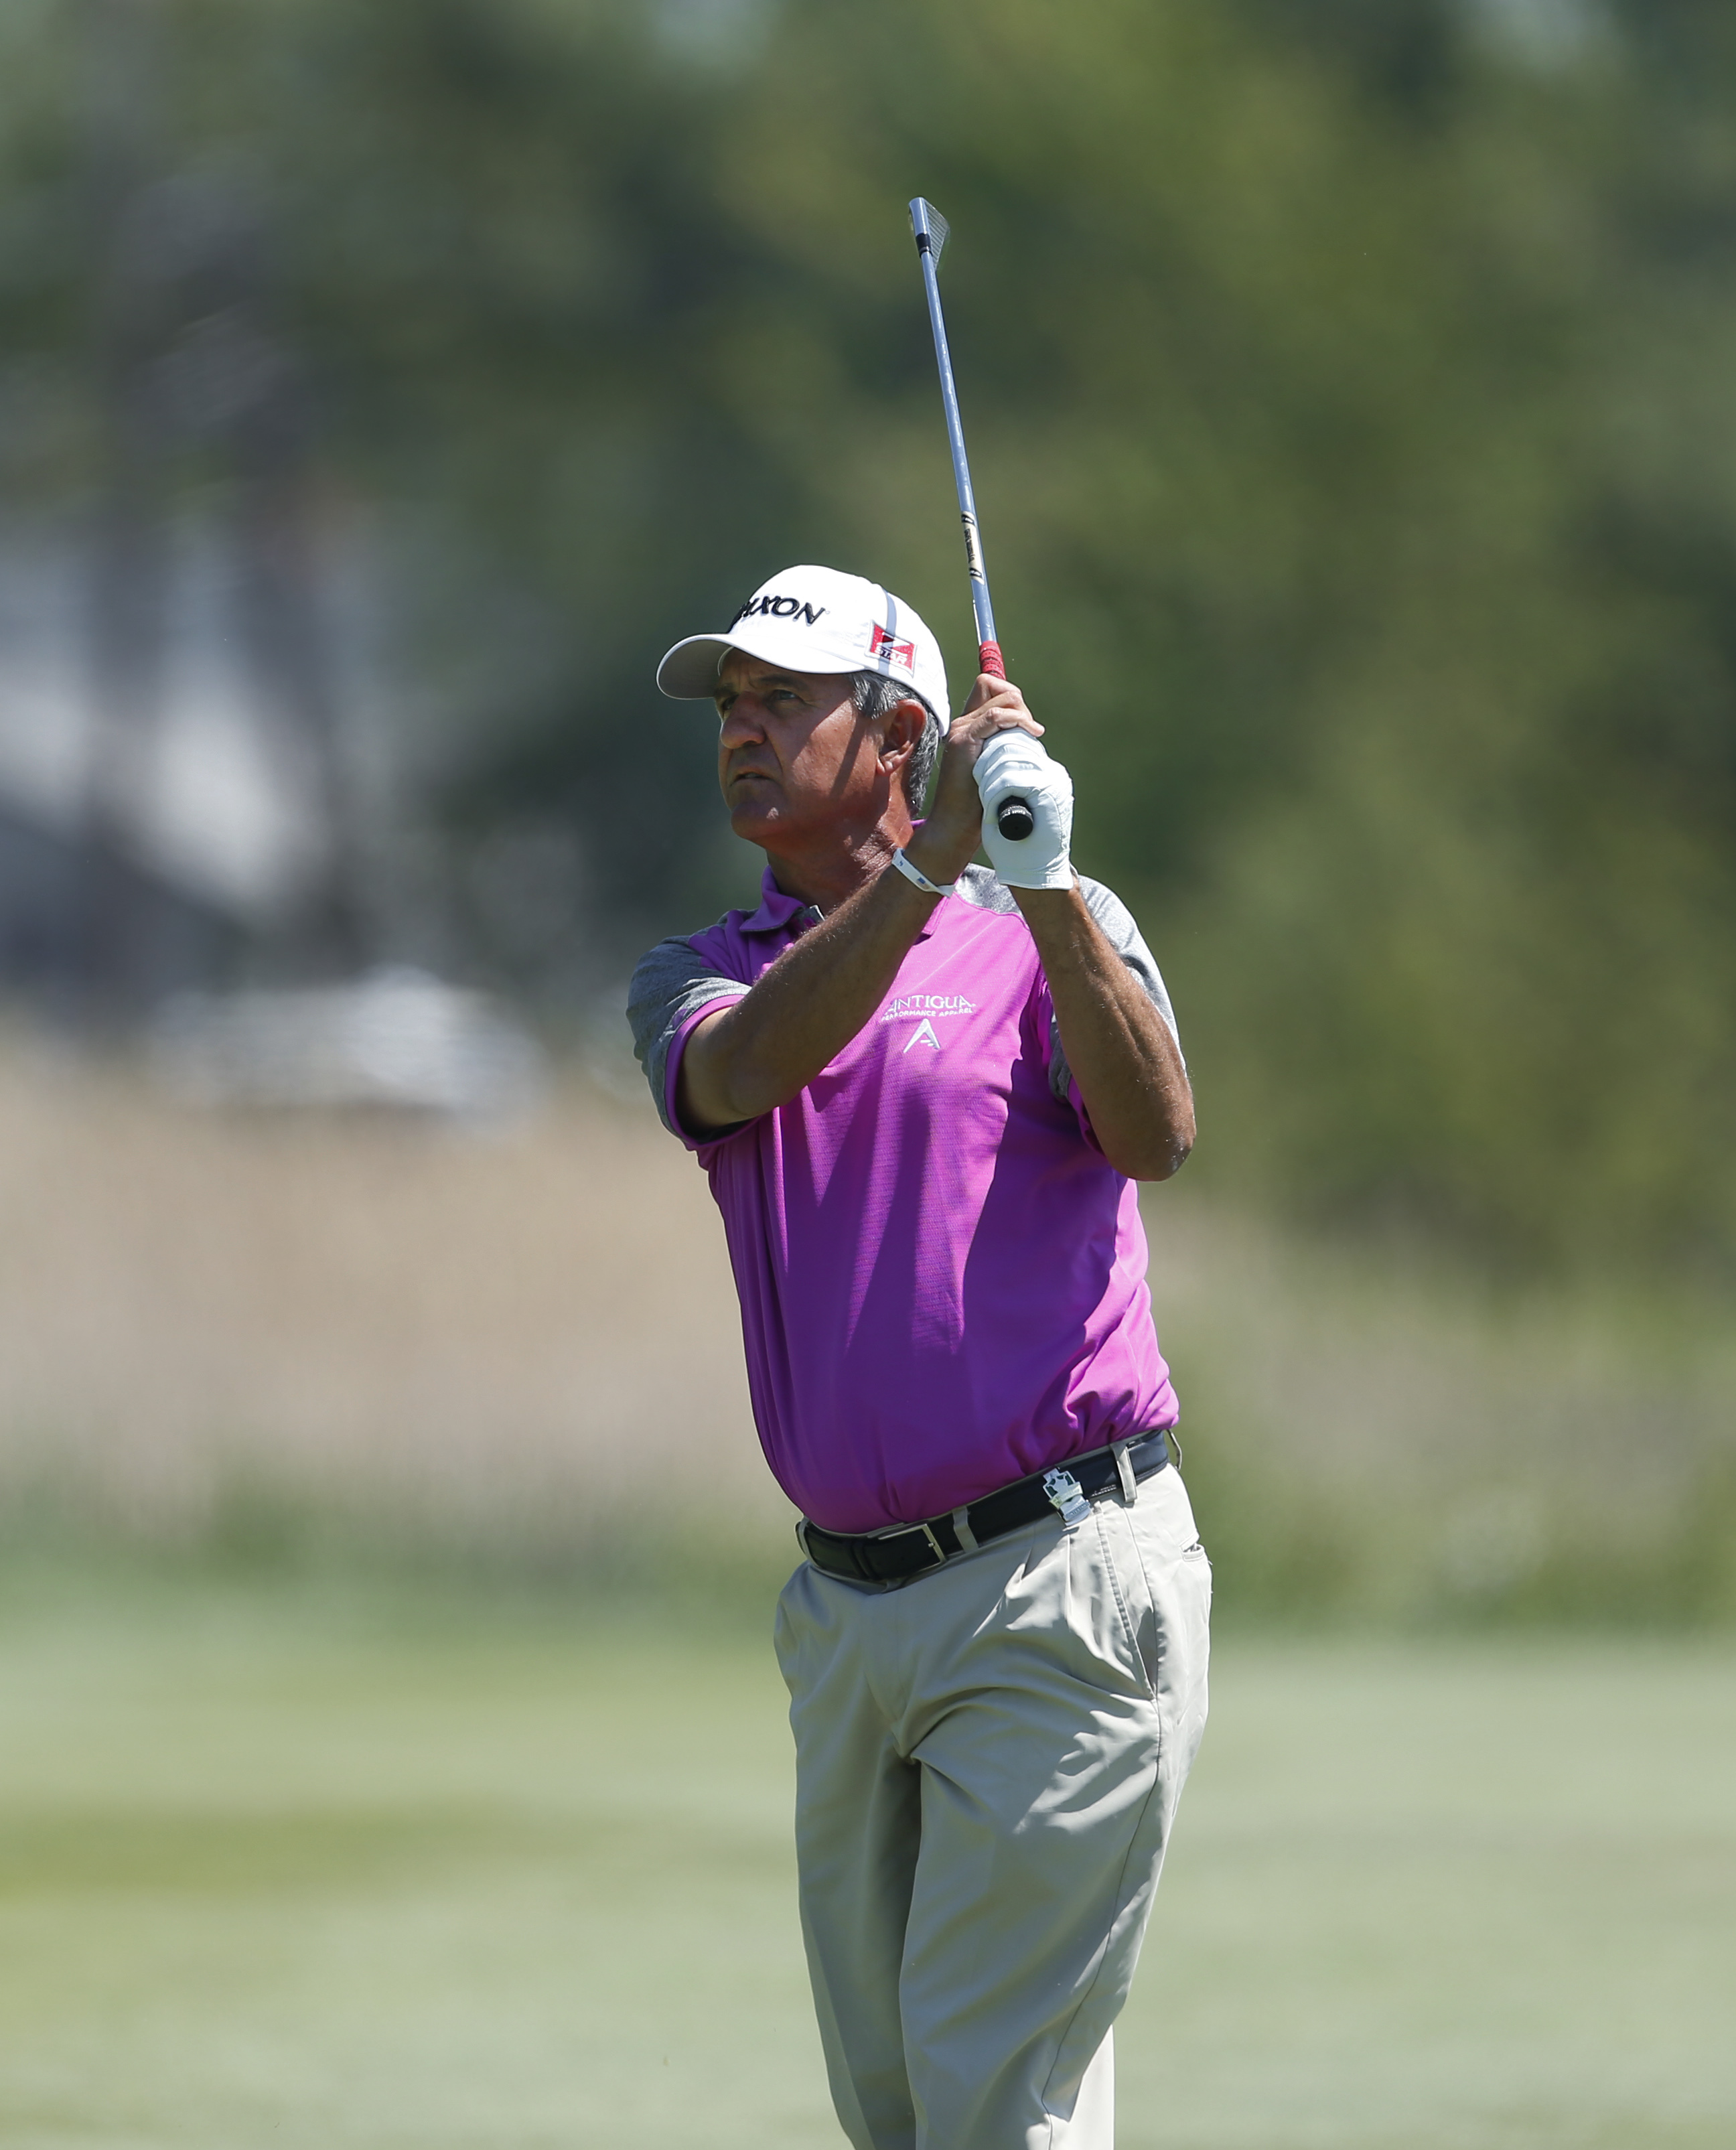 Steve Pate watches his fairway shot on the first hole during the final round of the 75th Senior PGA Championship golf tournament at Harbor Shores Golf Club in Benton Harbor, Mich., Sunday, May 25, 2014. (AP Photo/Paul Sancya)